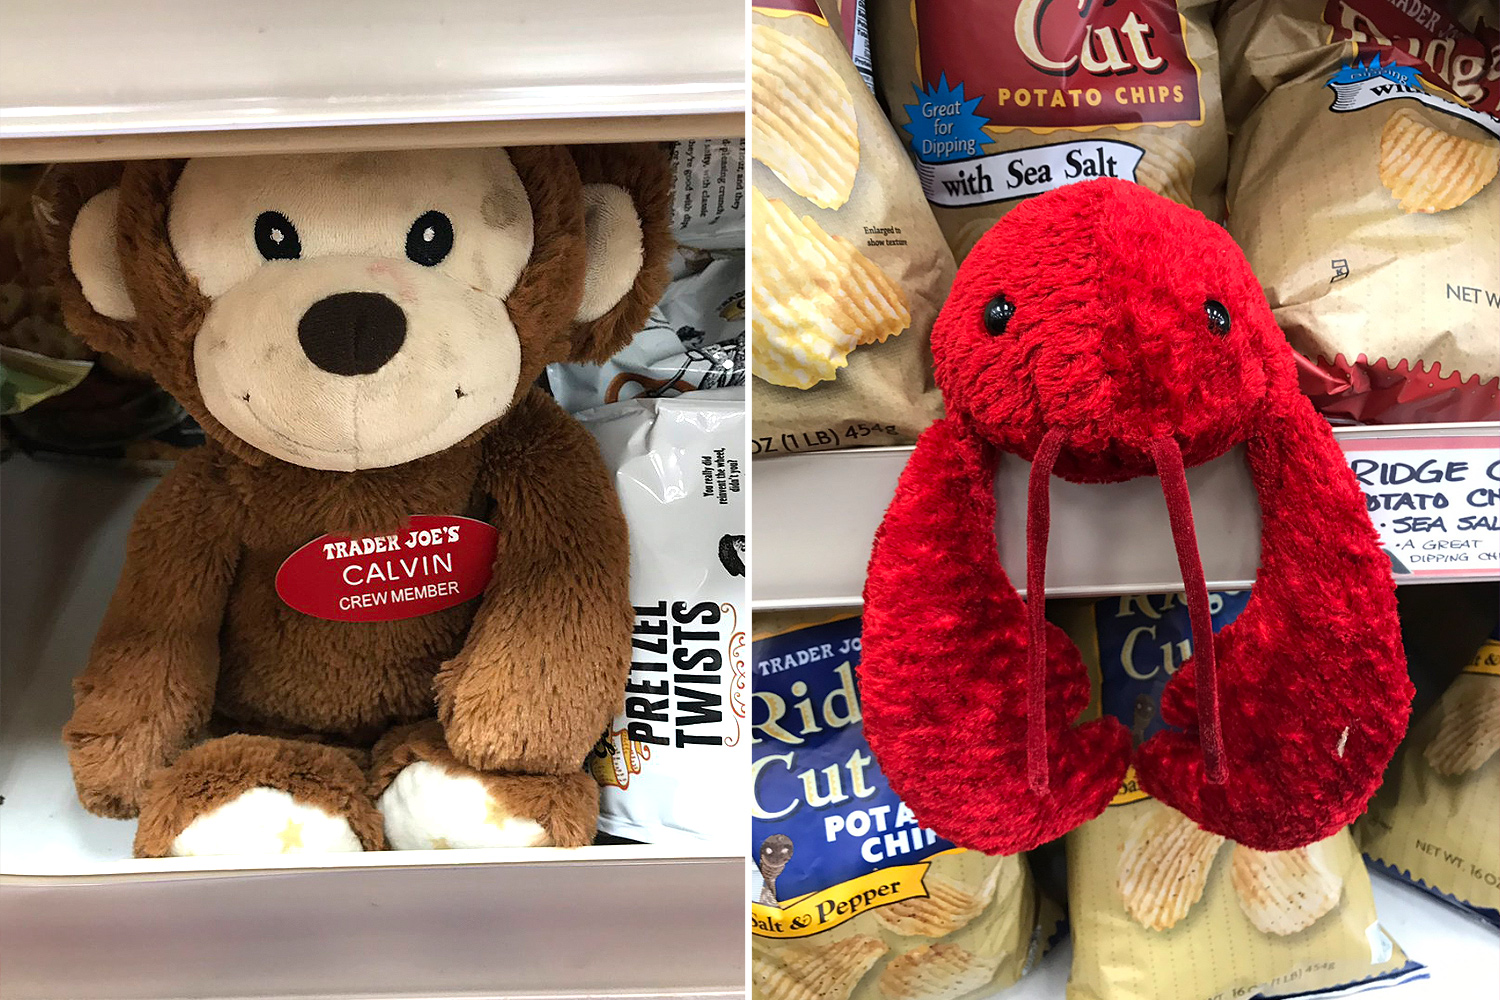 Stuffed animals in Trader Joe's